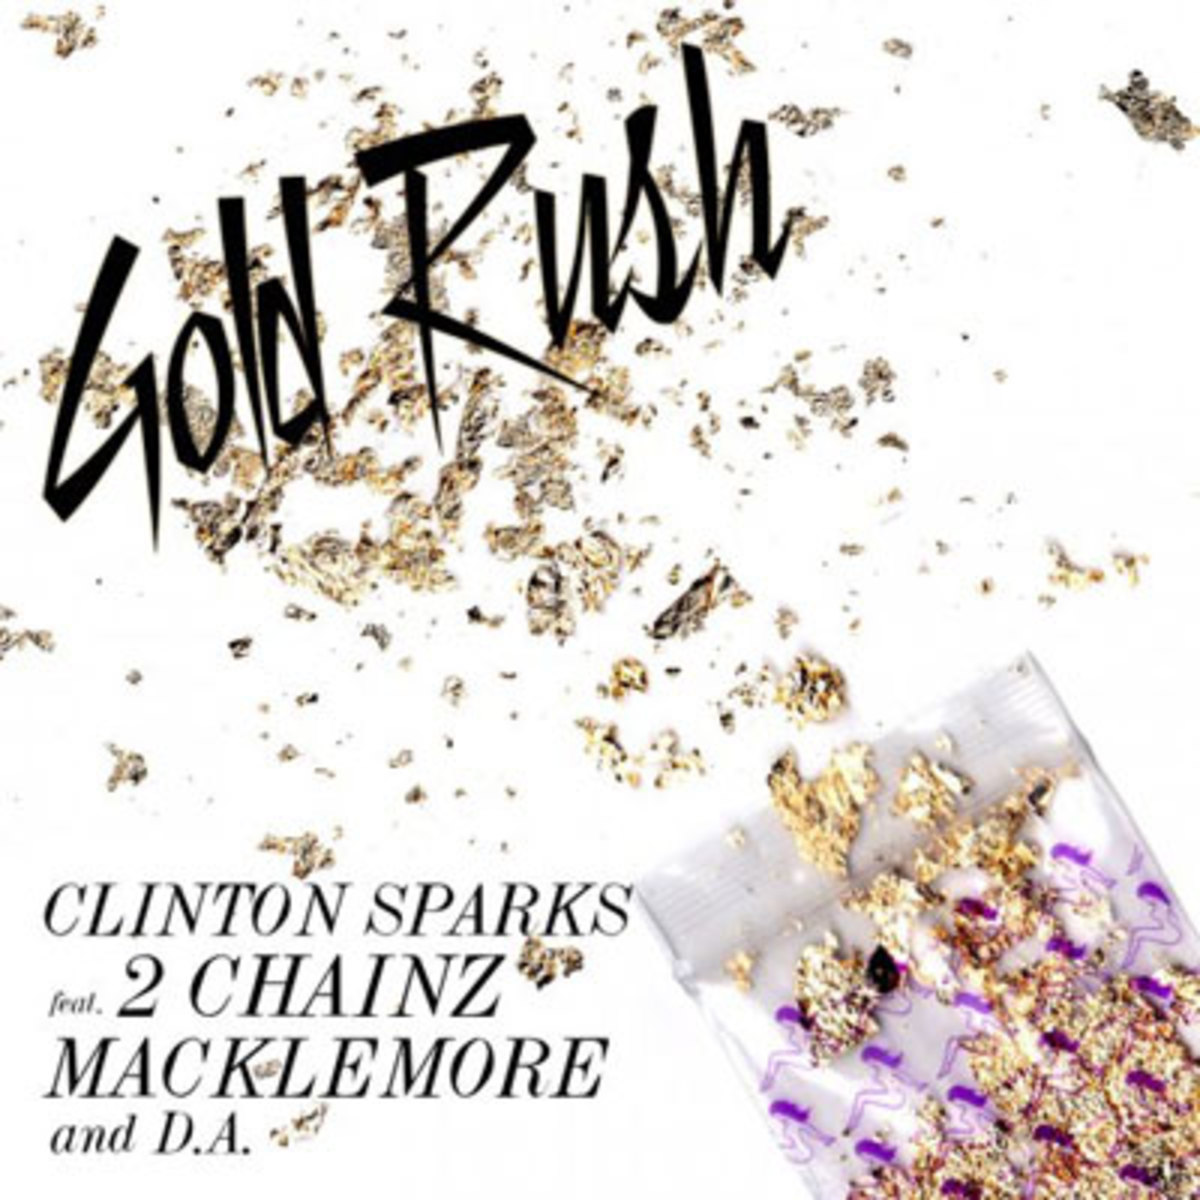 clintonsparks-goldrush.jpg